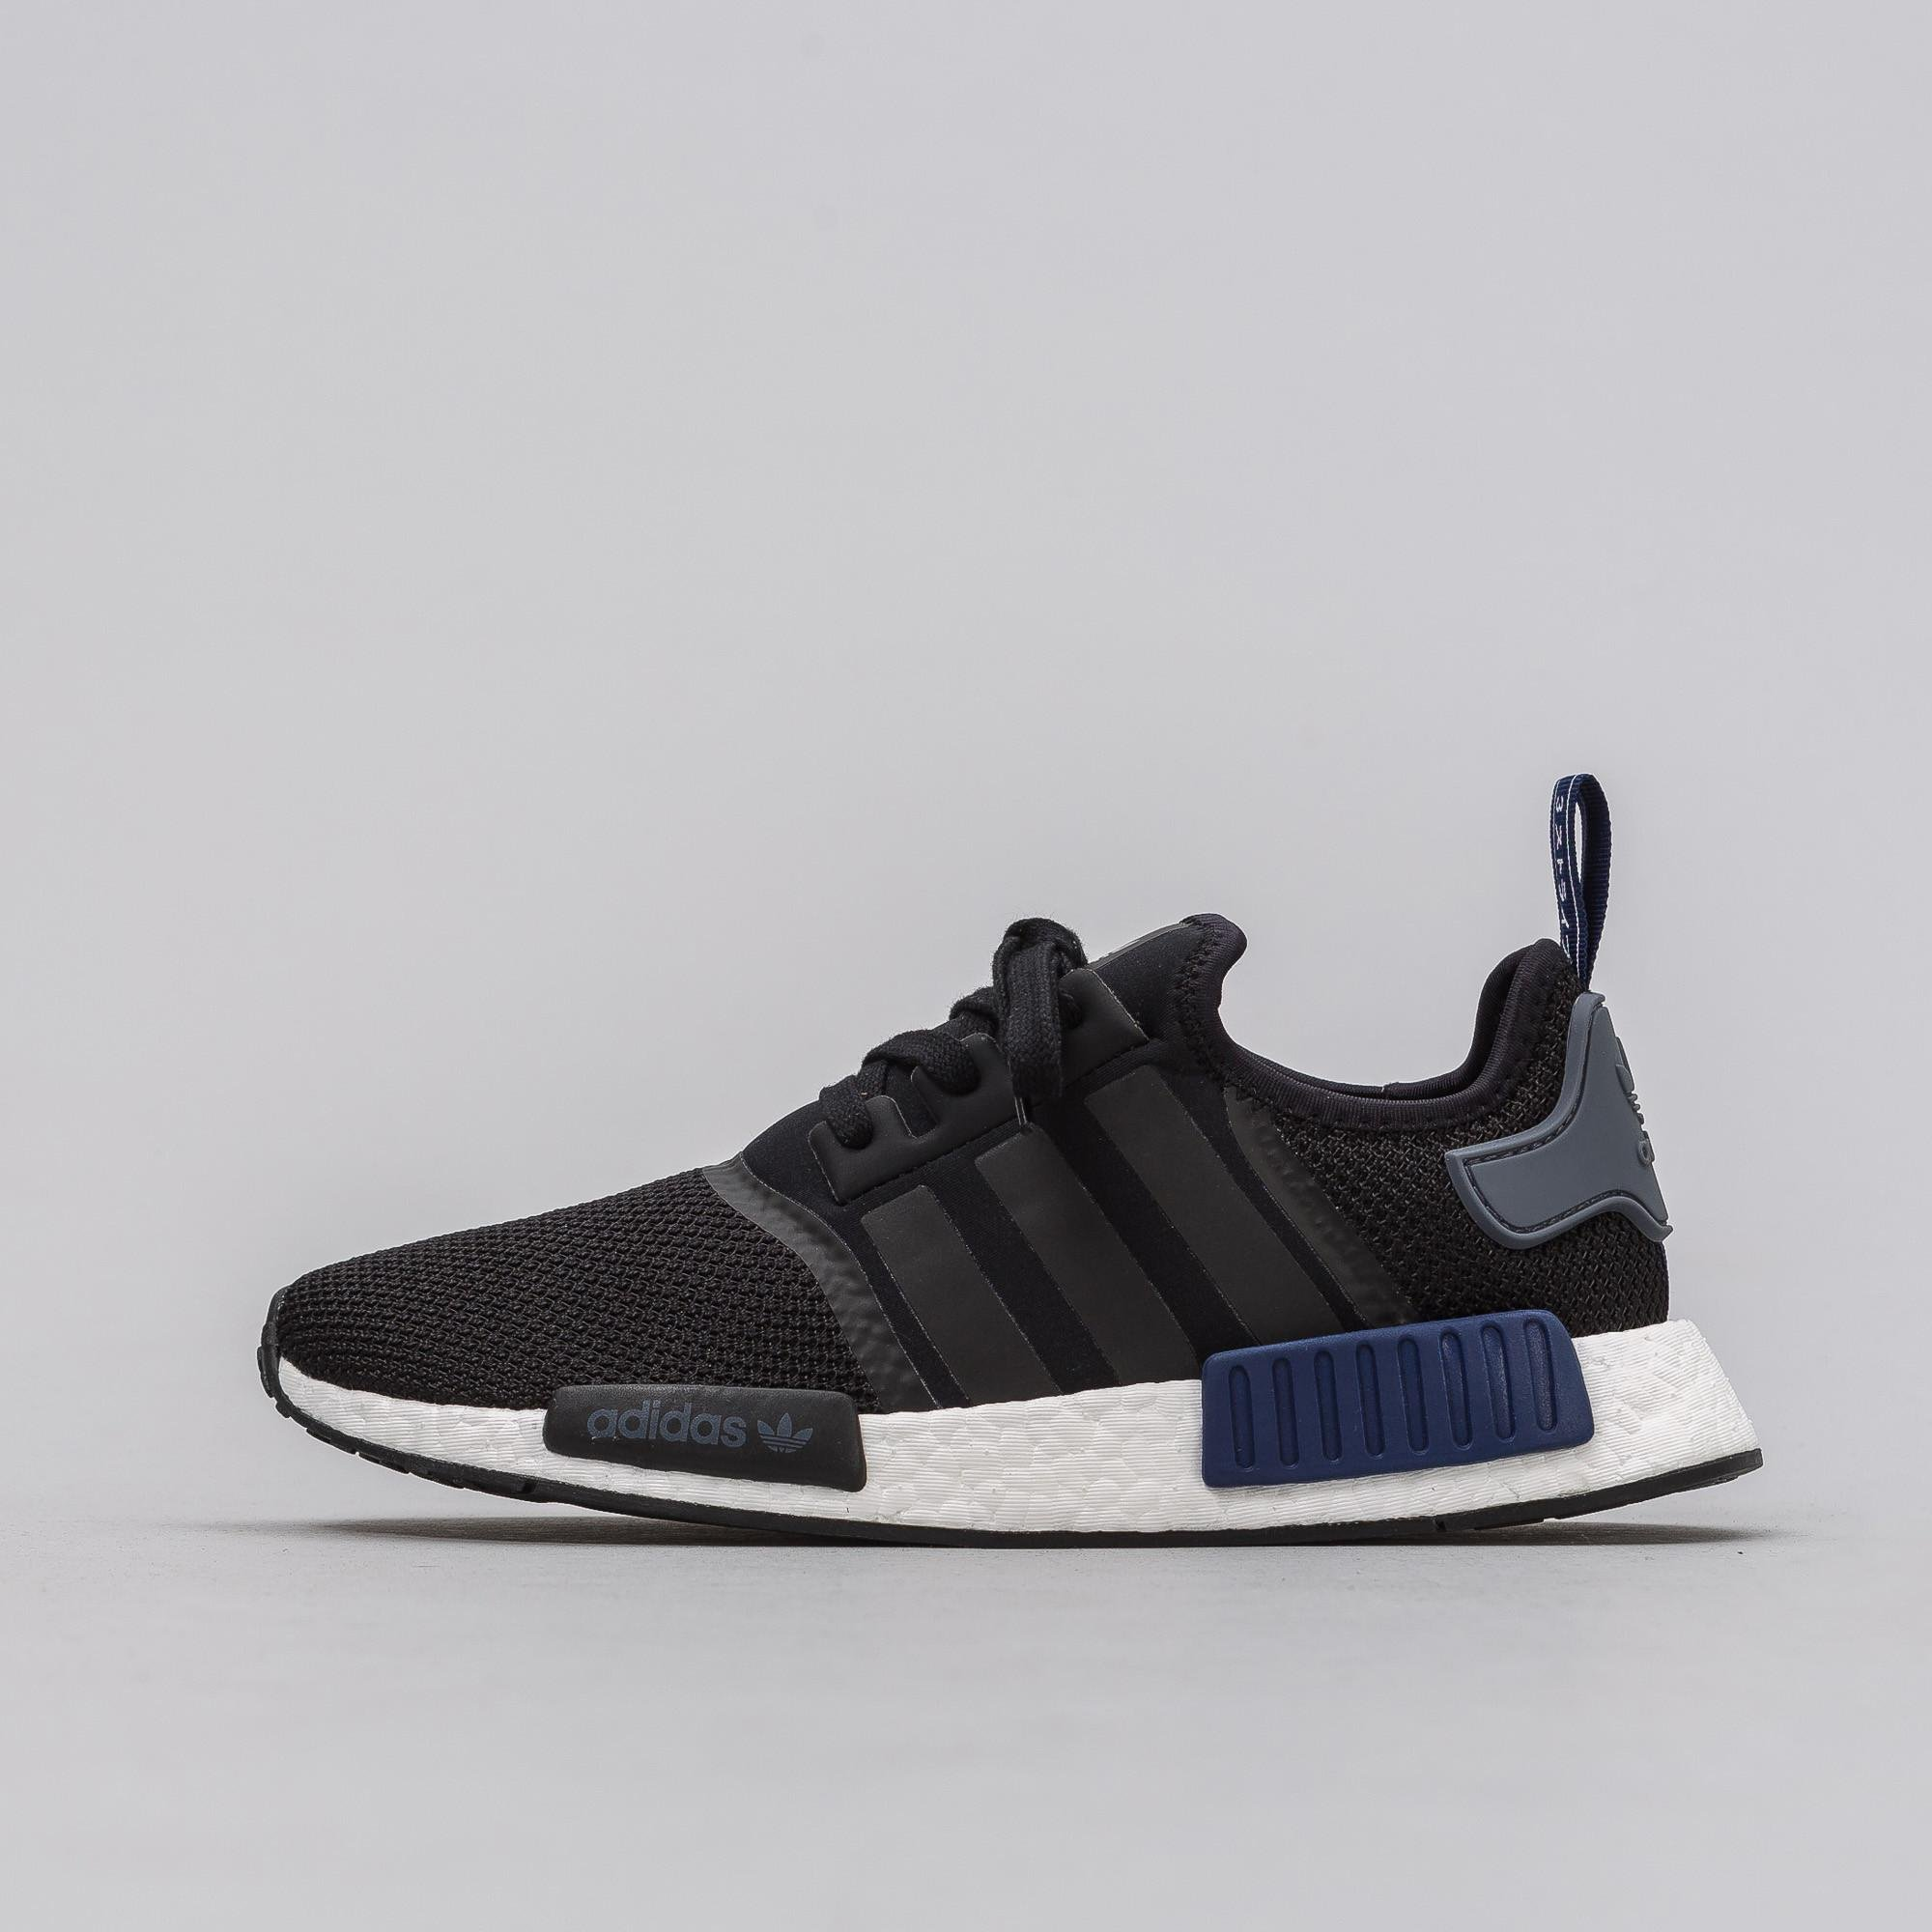 ... free shipping lyst adidas originals nmd r1 sports heritage for men  08758 33972 f831cf3f1